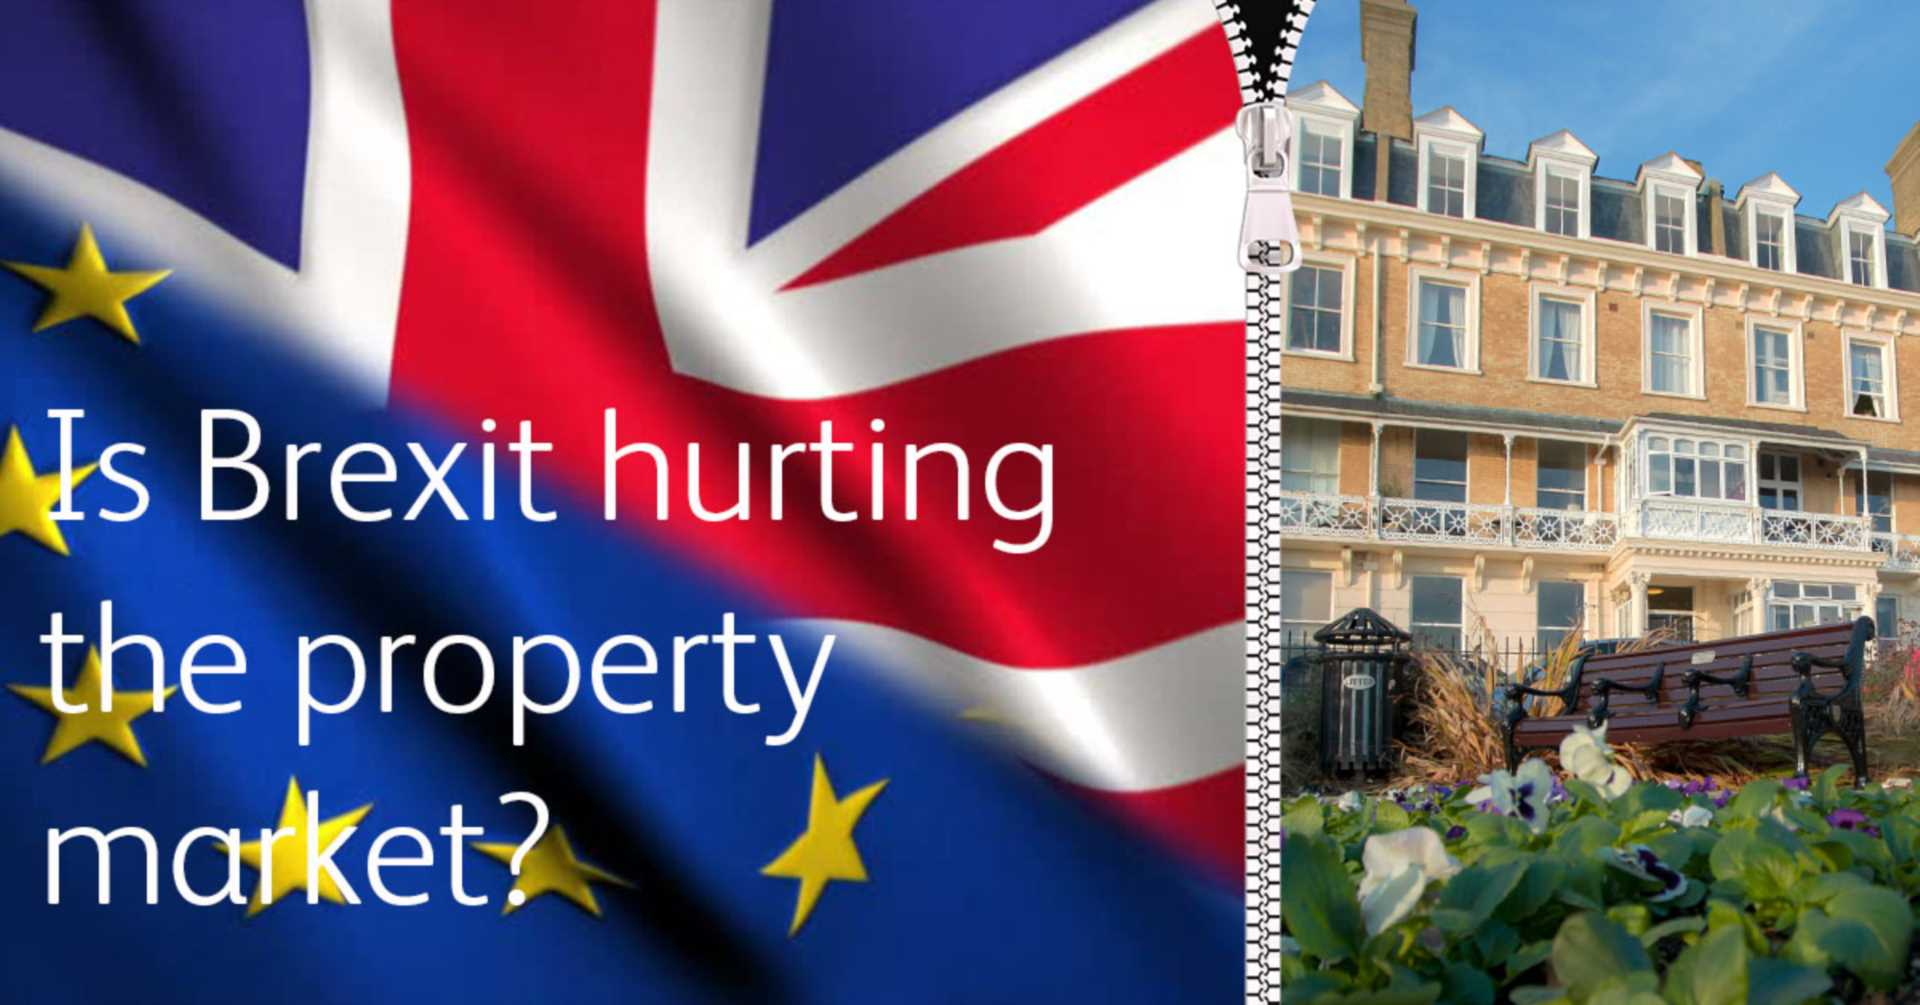 Is Brexit The Hurting Property Market?